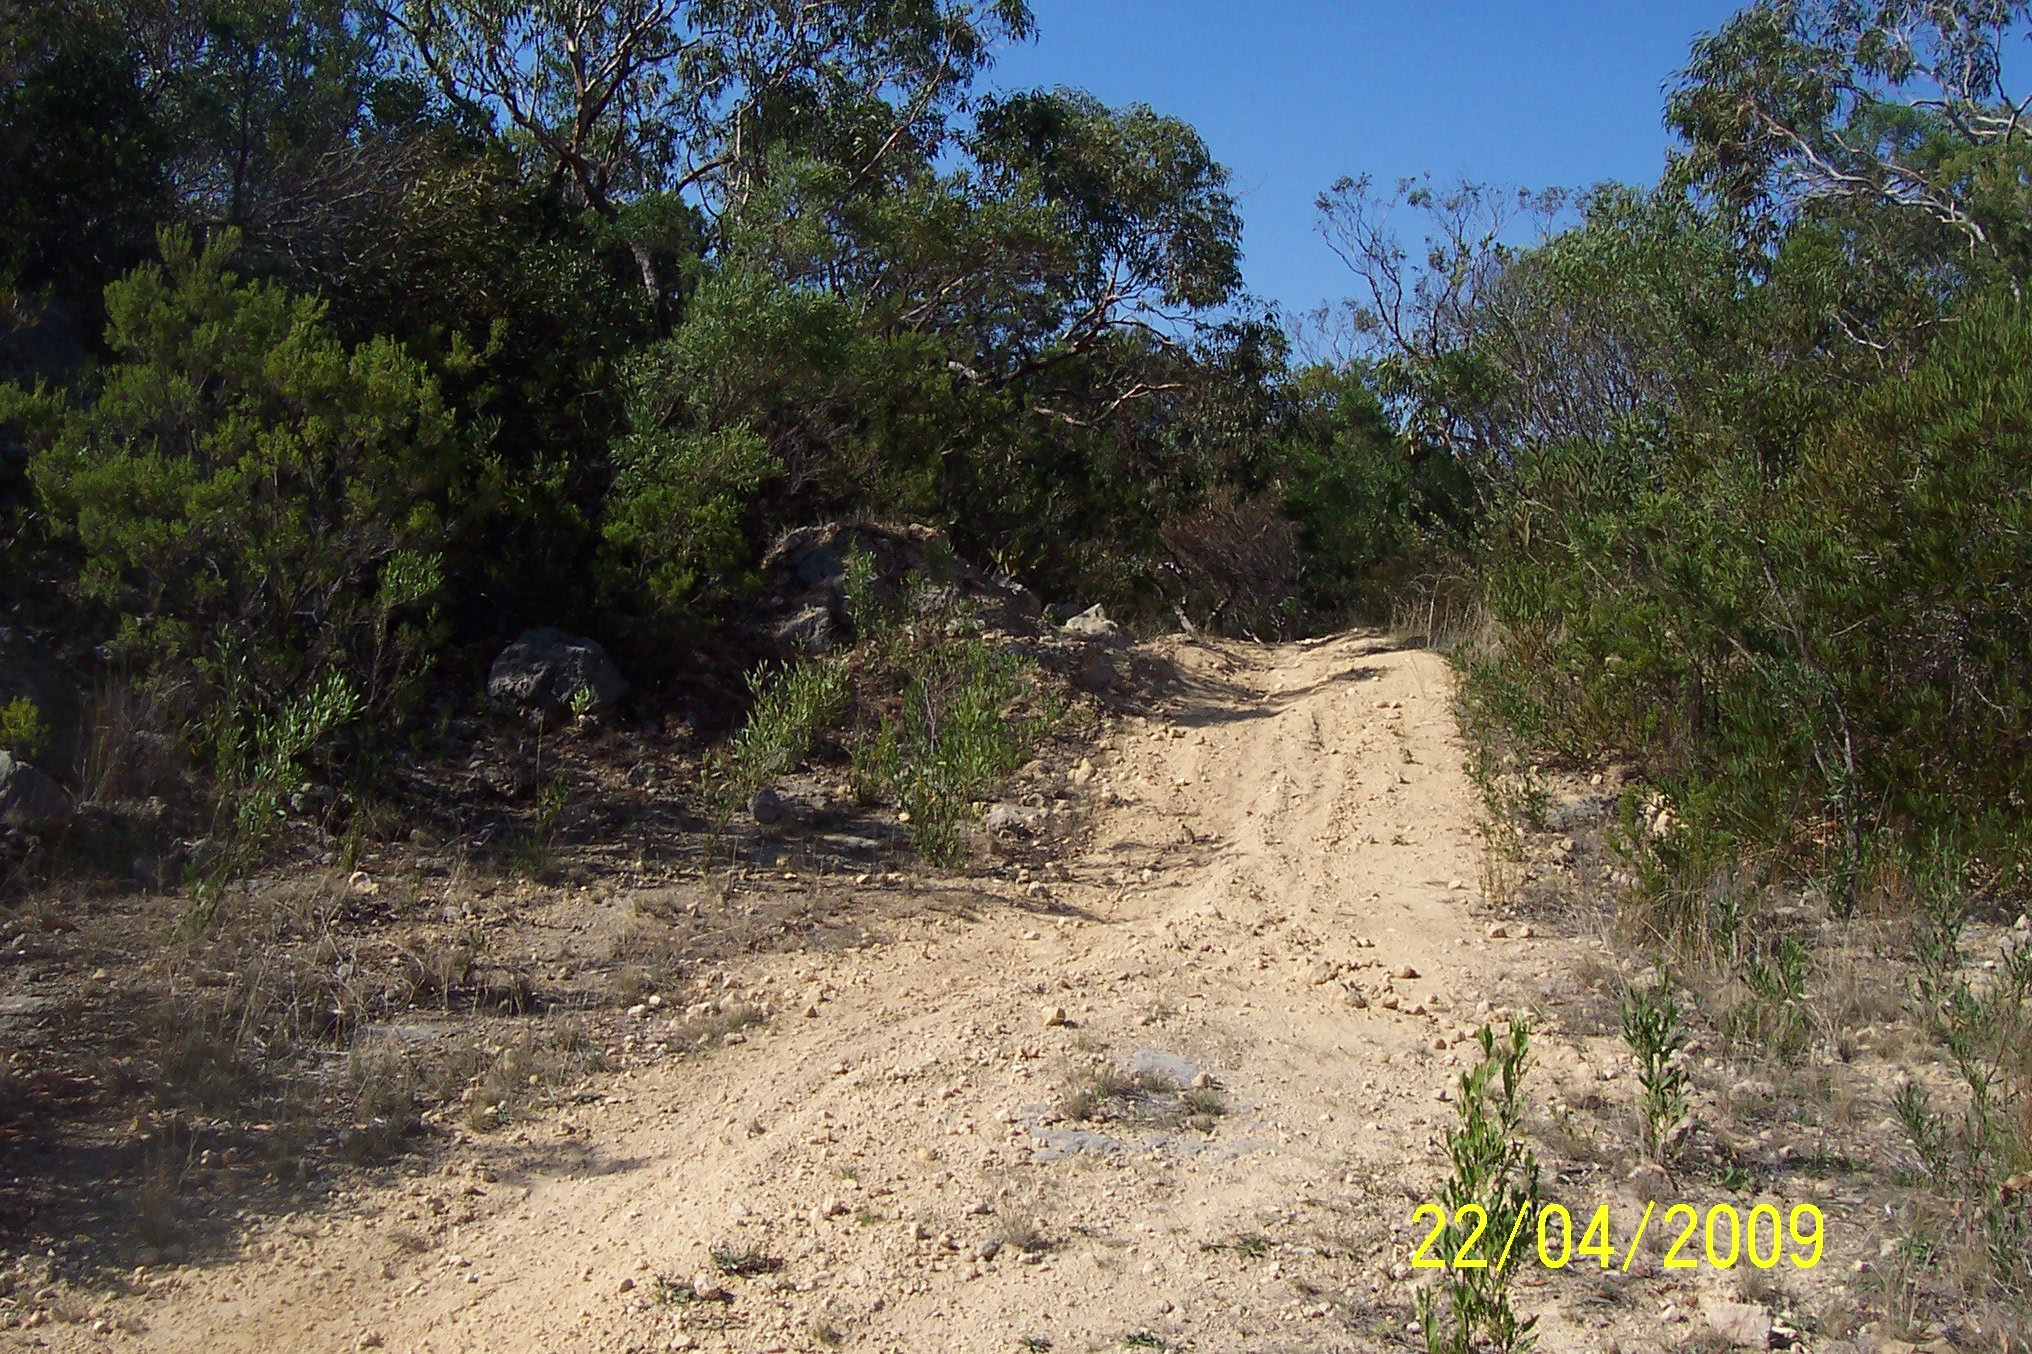 Track3 found on the Robe to Penola Road near Furner turnoff